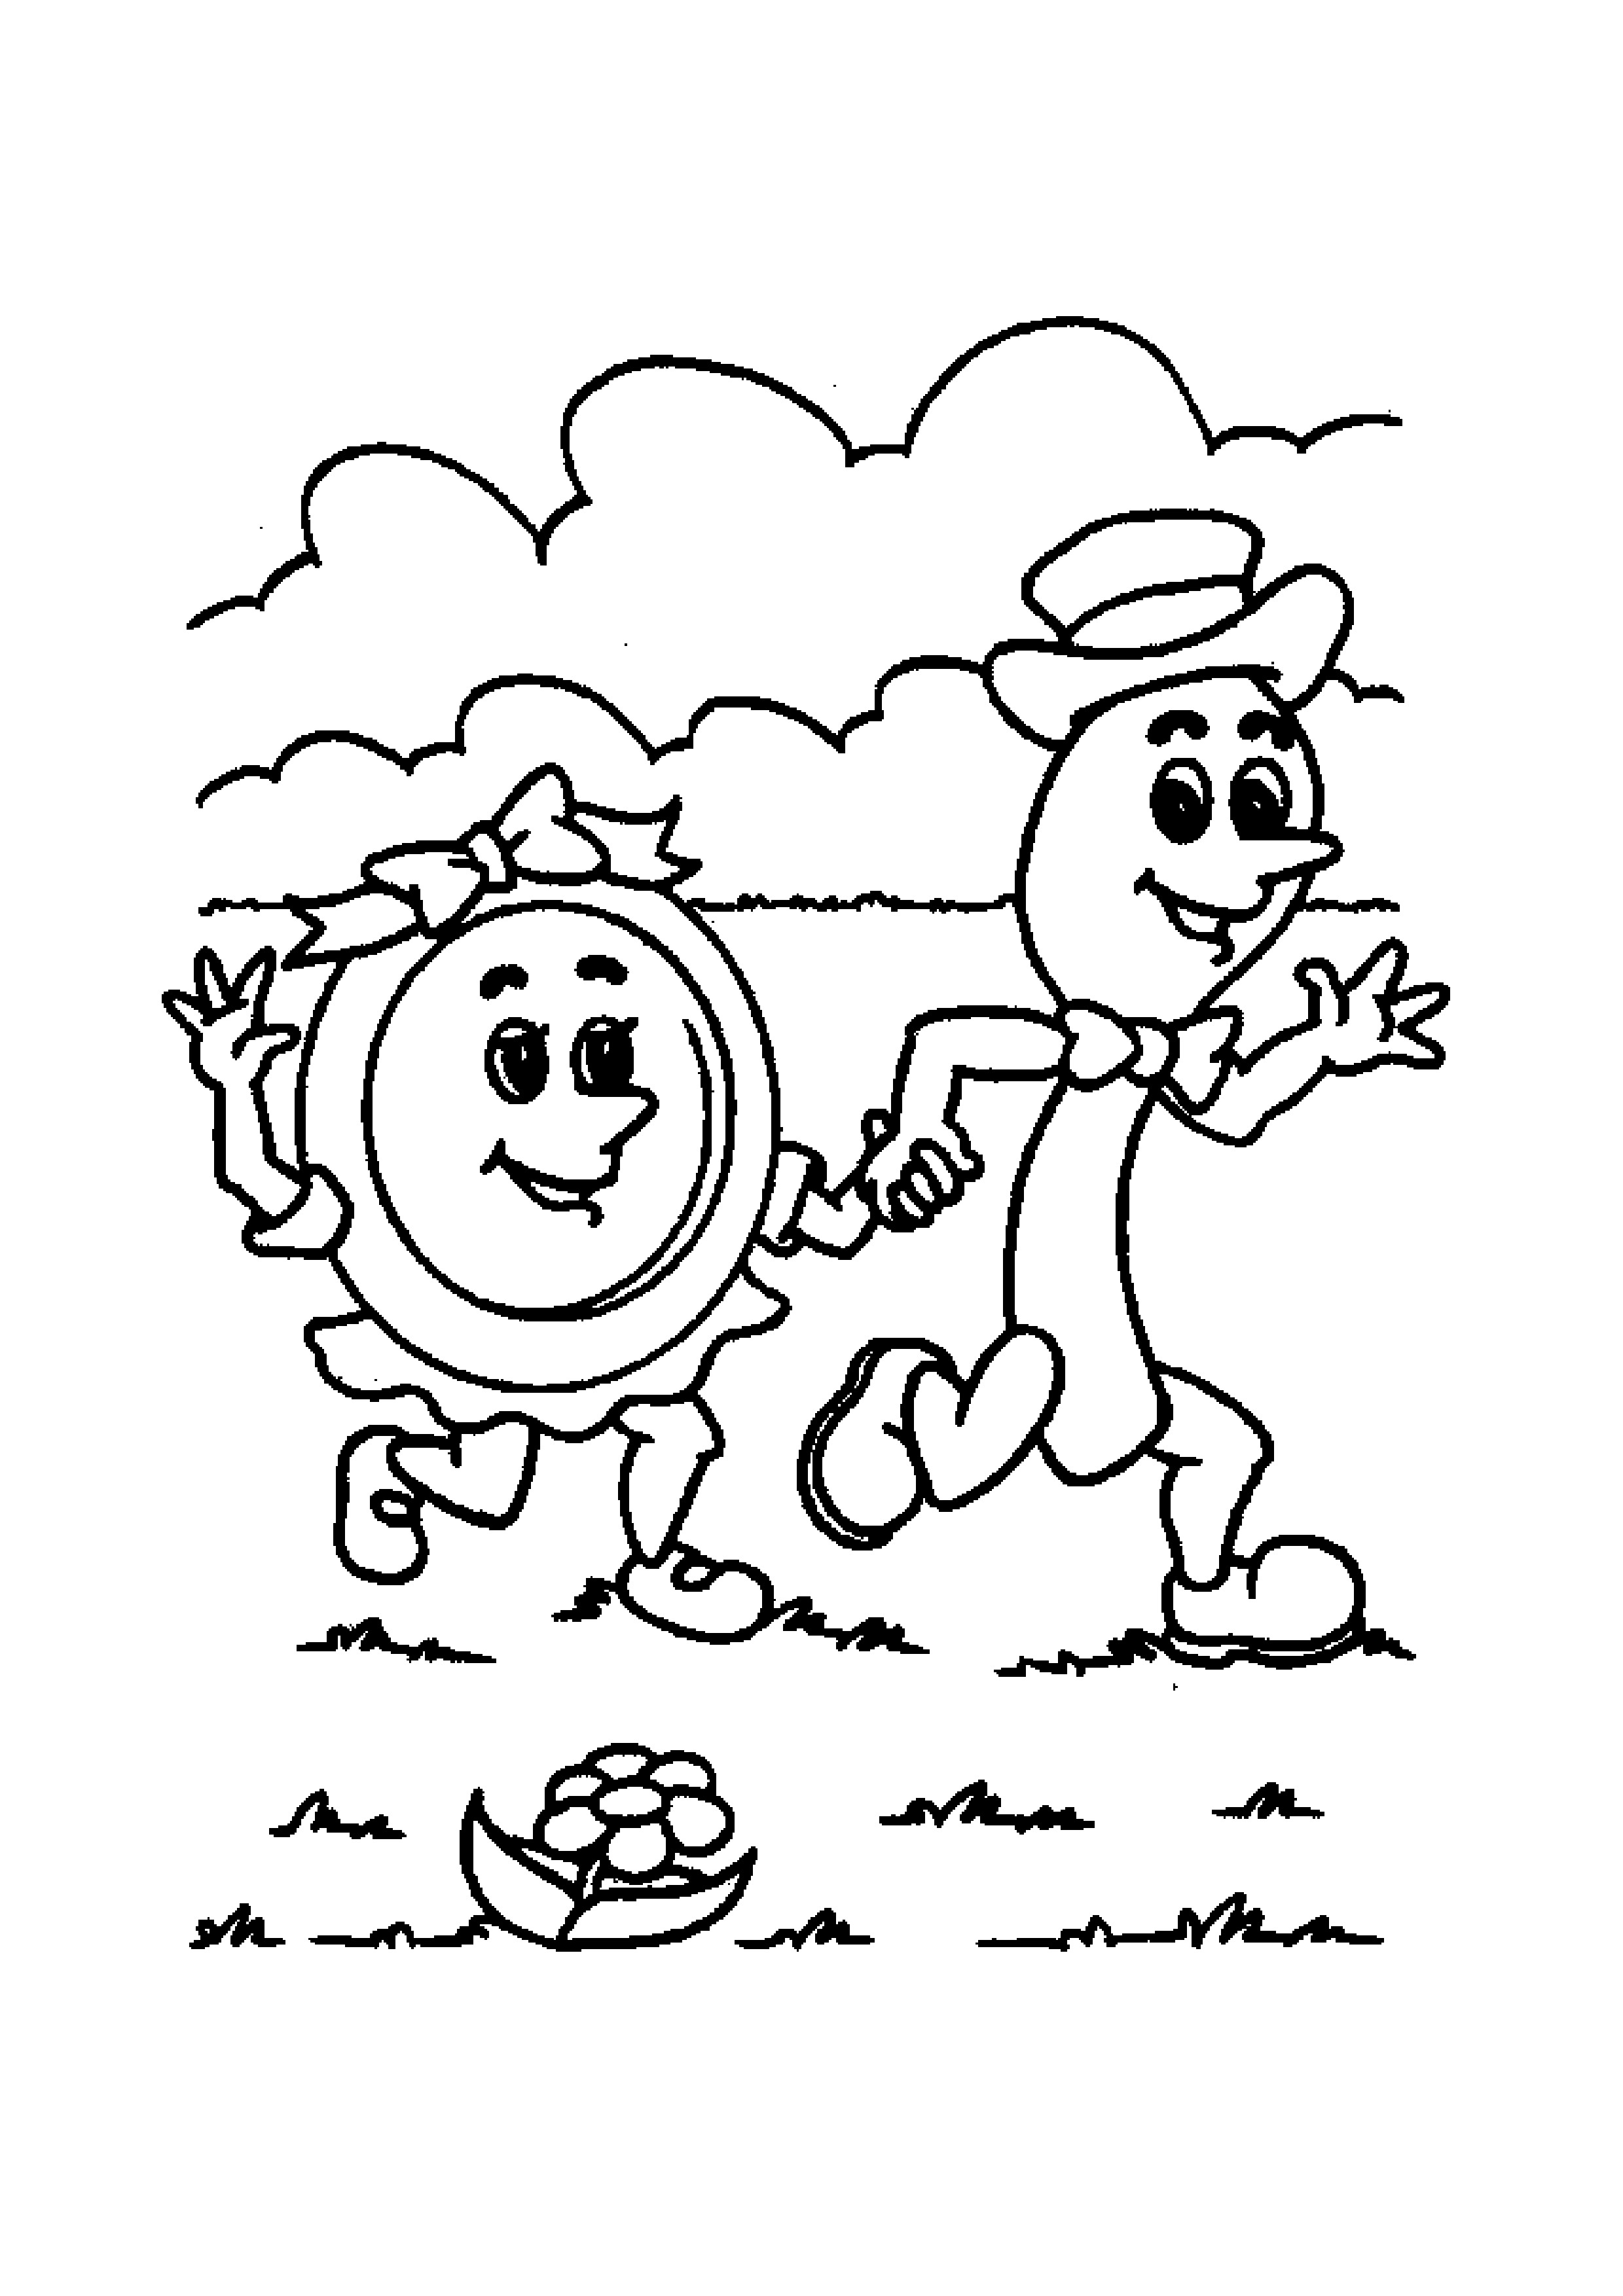 Nurse Coloring Pages For Kids At Getdrawings